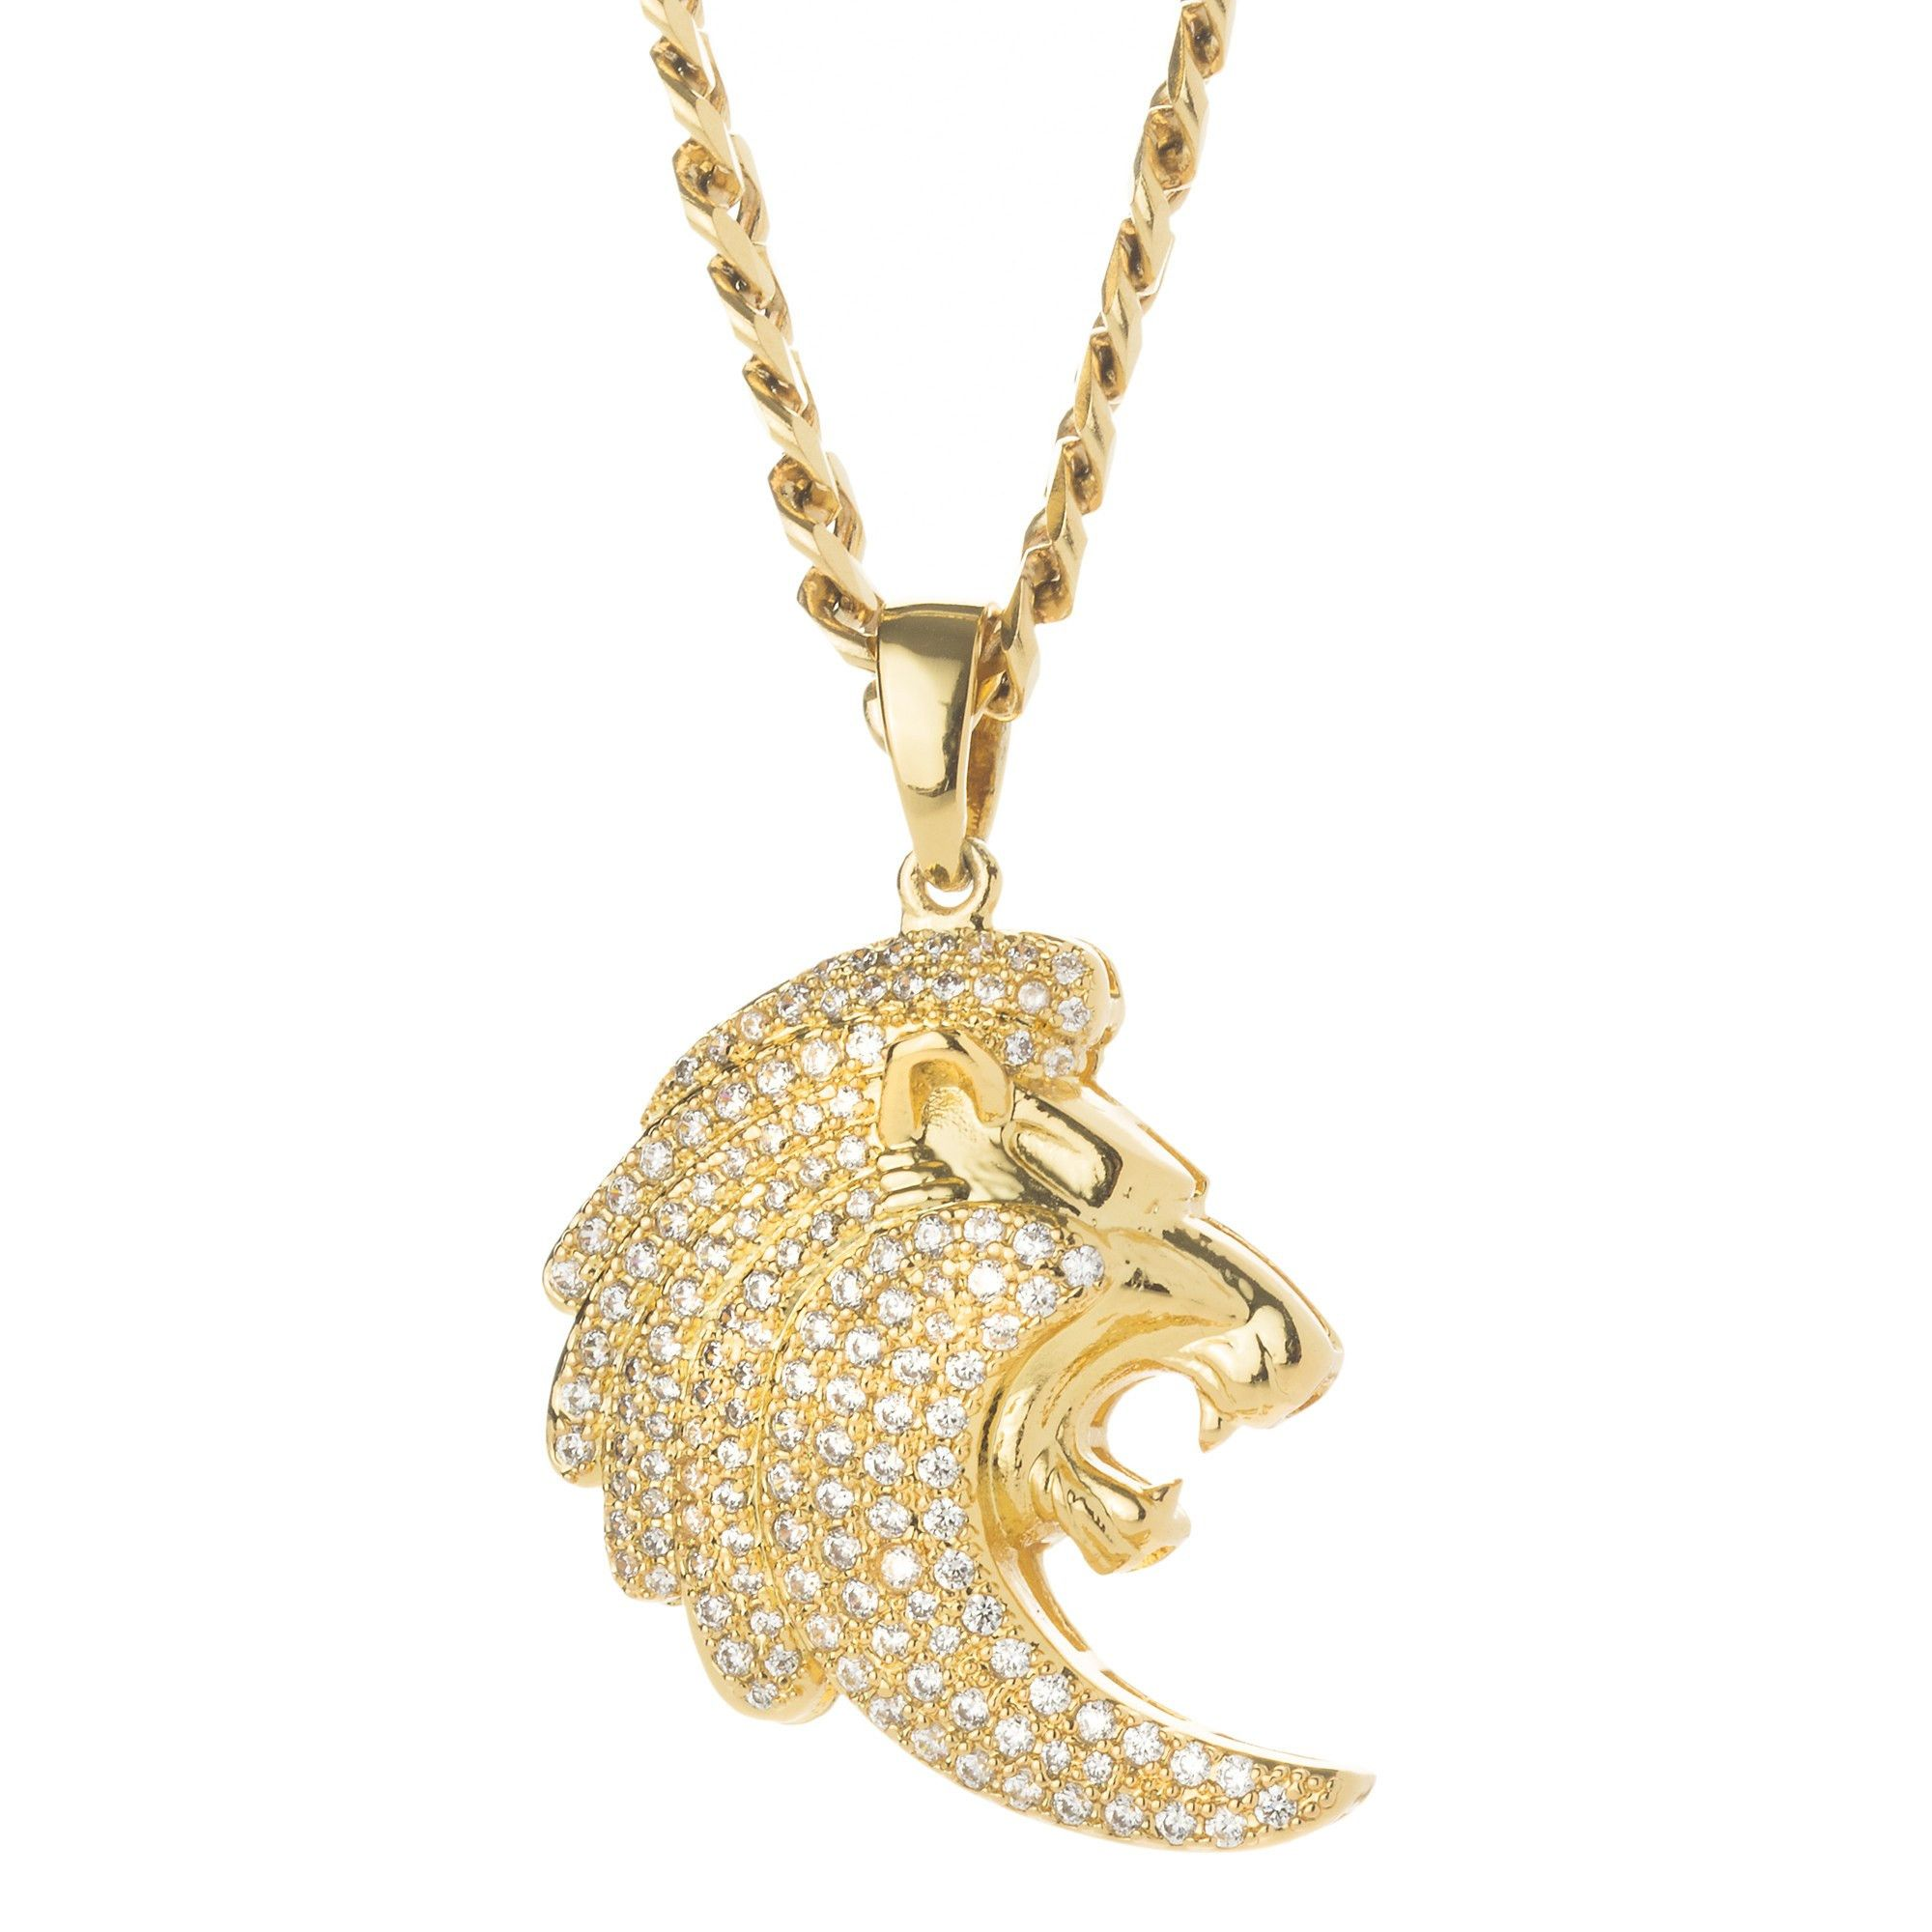 pendant jewellery shop lion silver necklace serge denimes